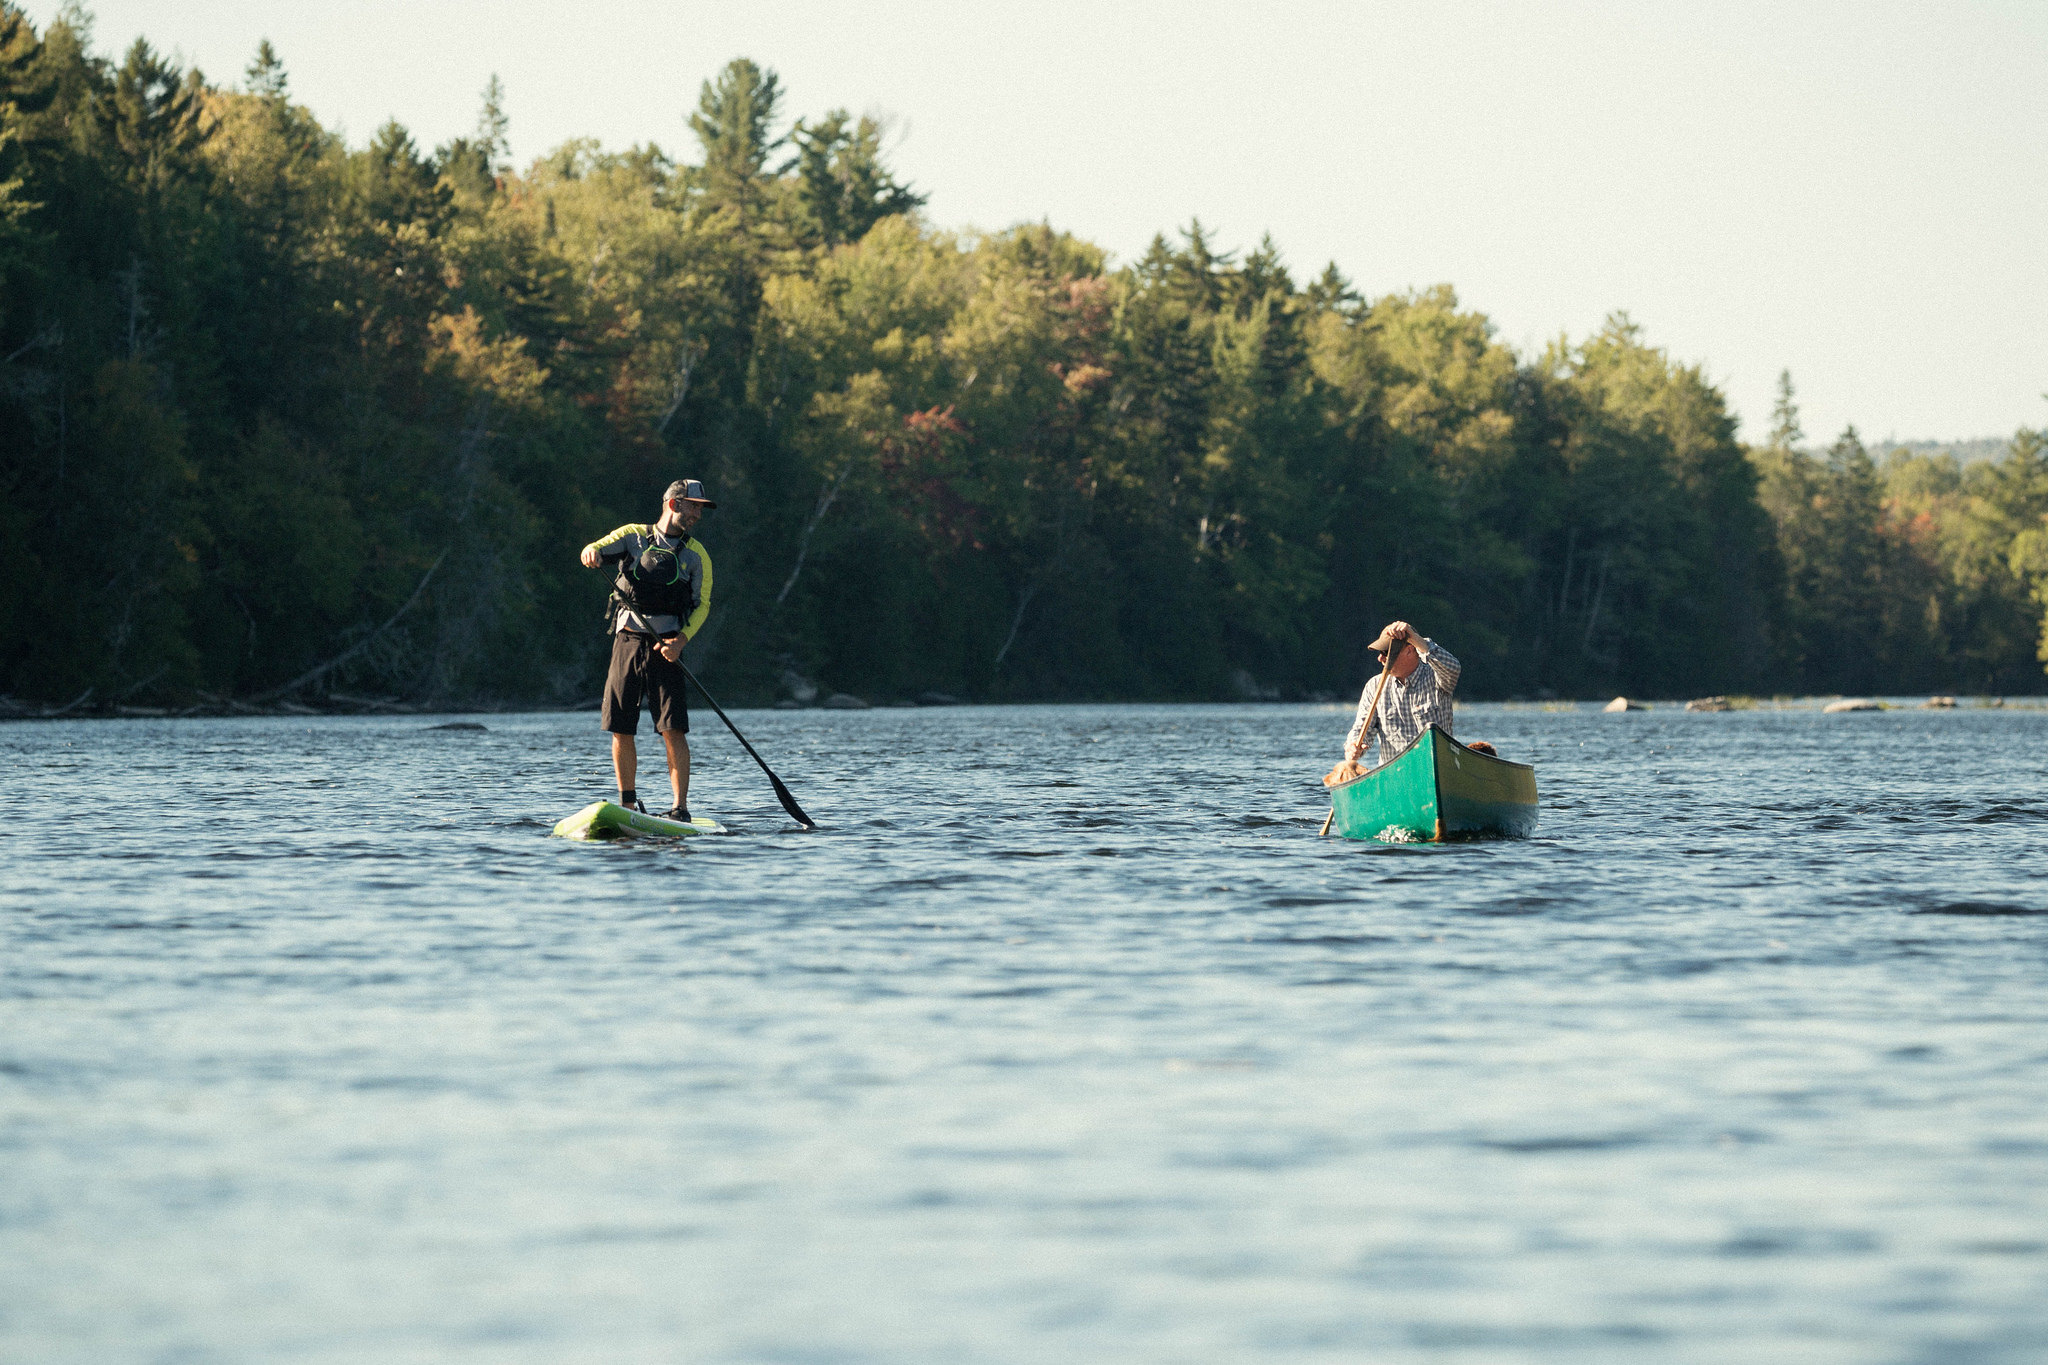 Paddling on the Penobscot River